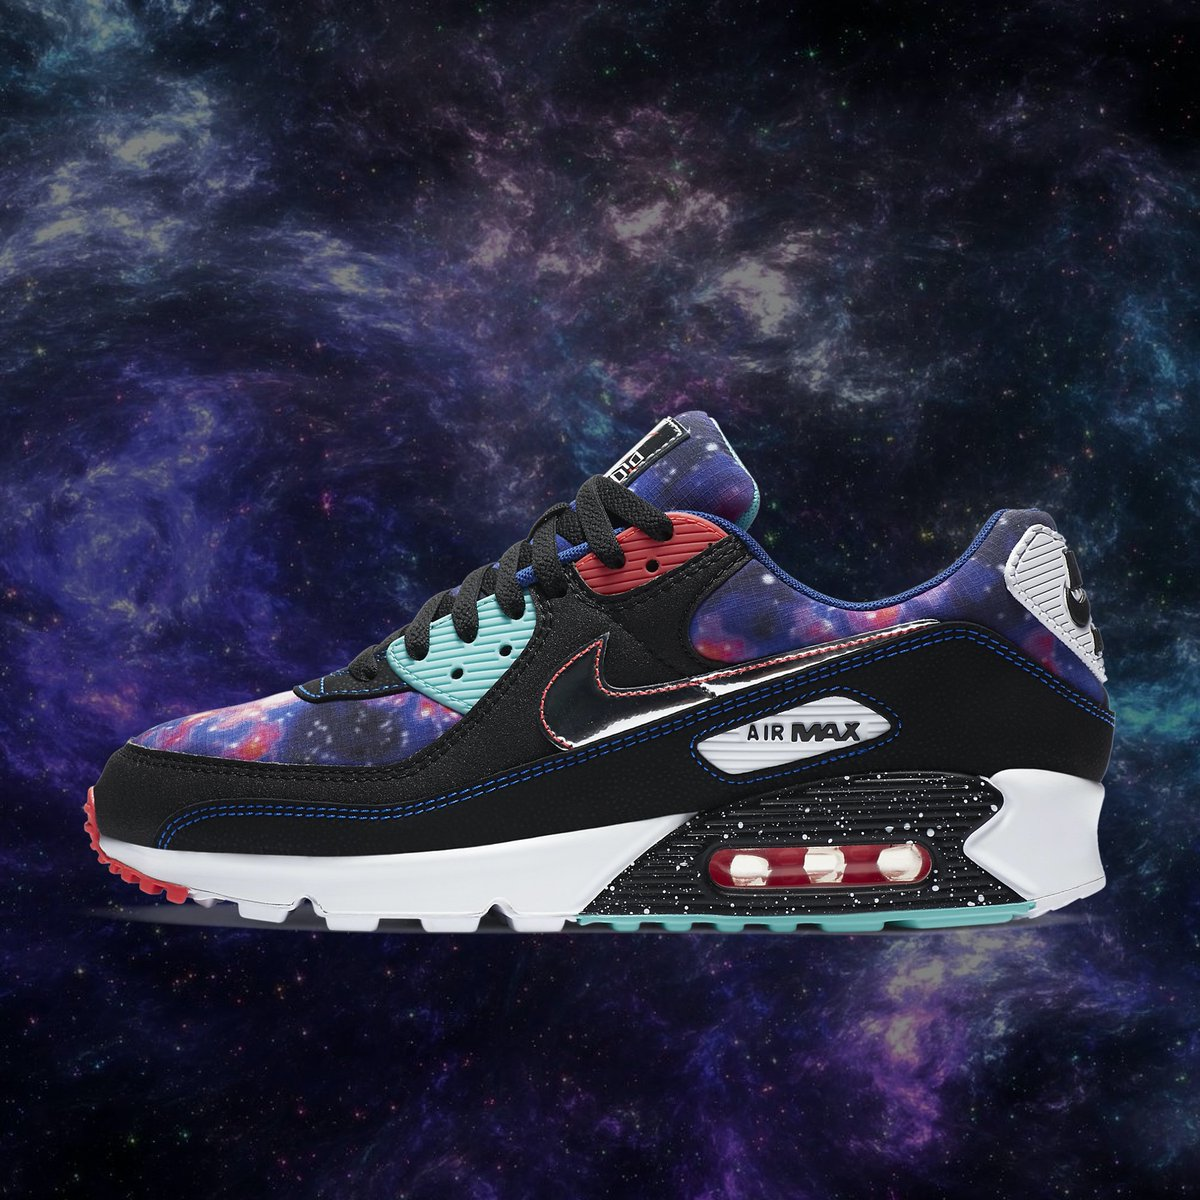 J23 Iphone App On Twitter Nike Air Max 90 Supernova June 20th